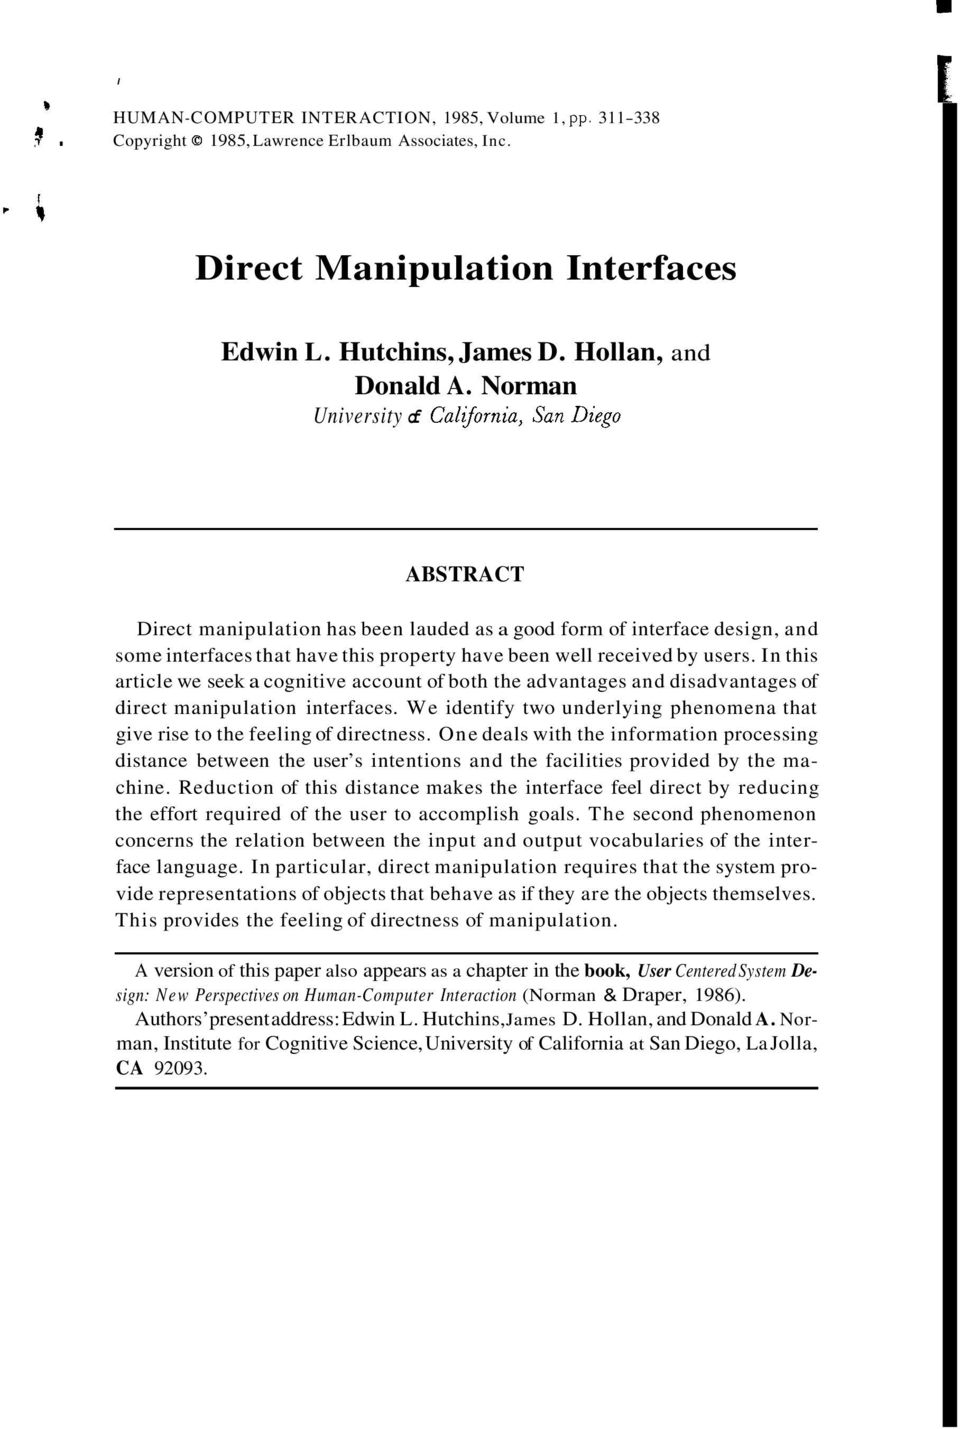 users. In this article we seek a cognitive account of both the advantages and disadvantages of direct manipulation interfaces.